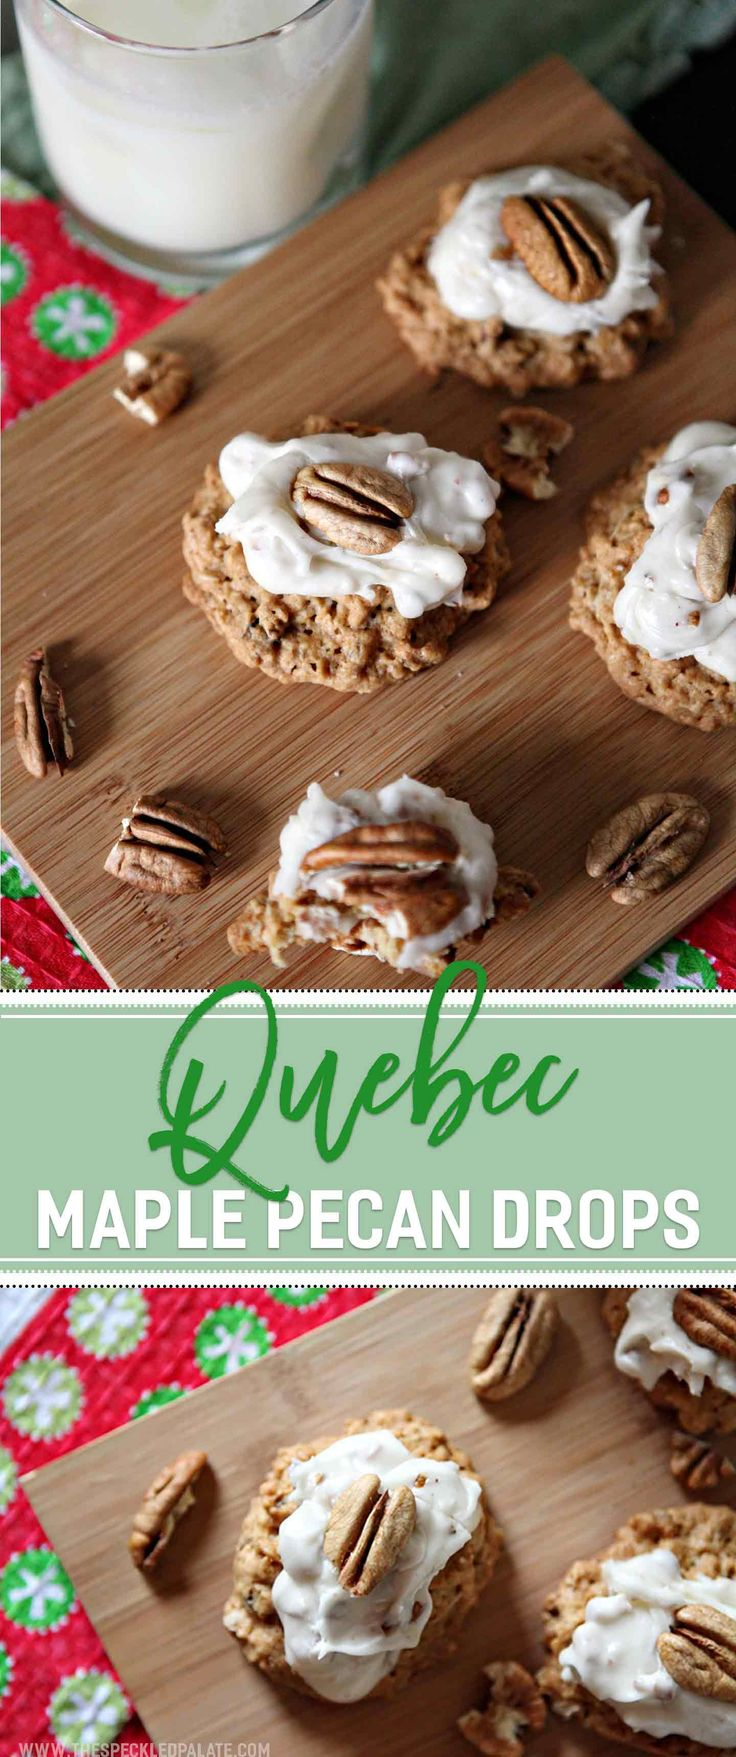 Quebec Maple Pecan Drops make a sweet treat for the holidays! These cookies are packed with oats and pecans and maple syrup goodness! via @speckledpalate